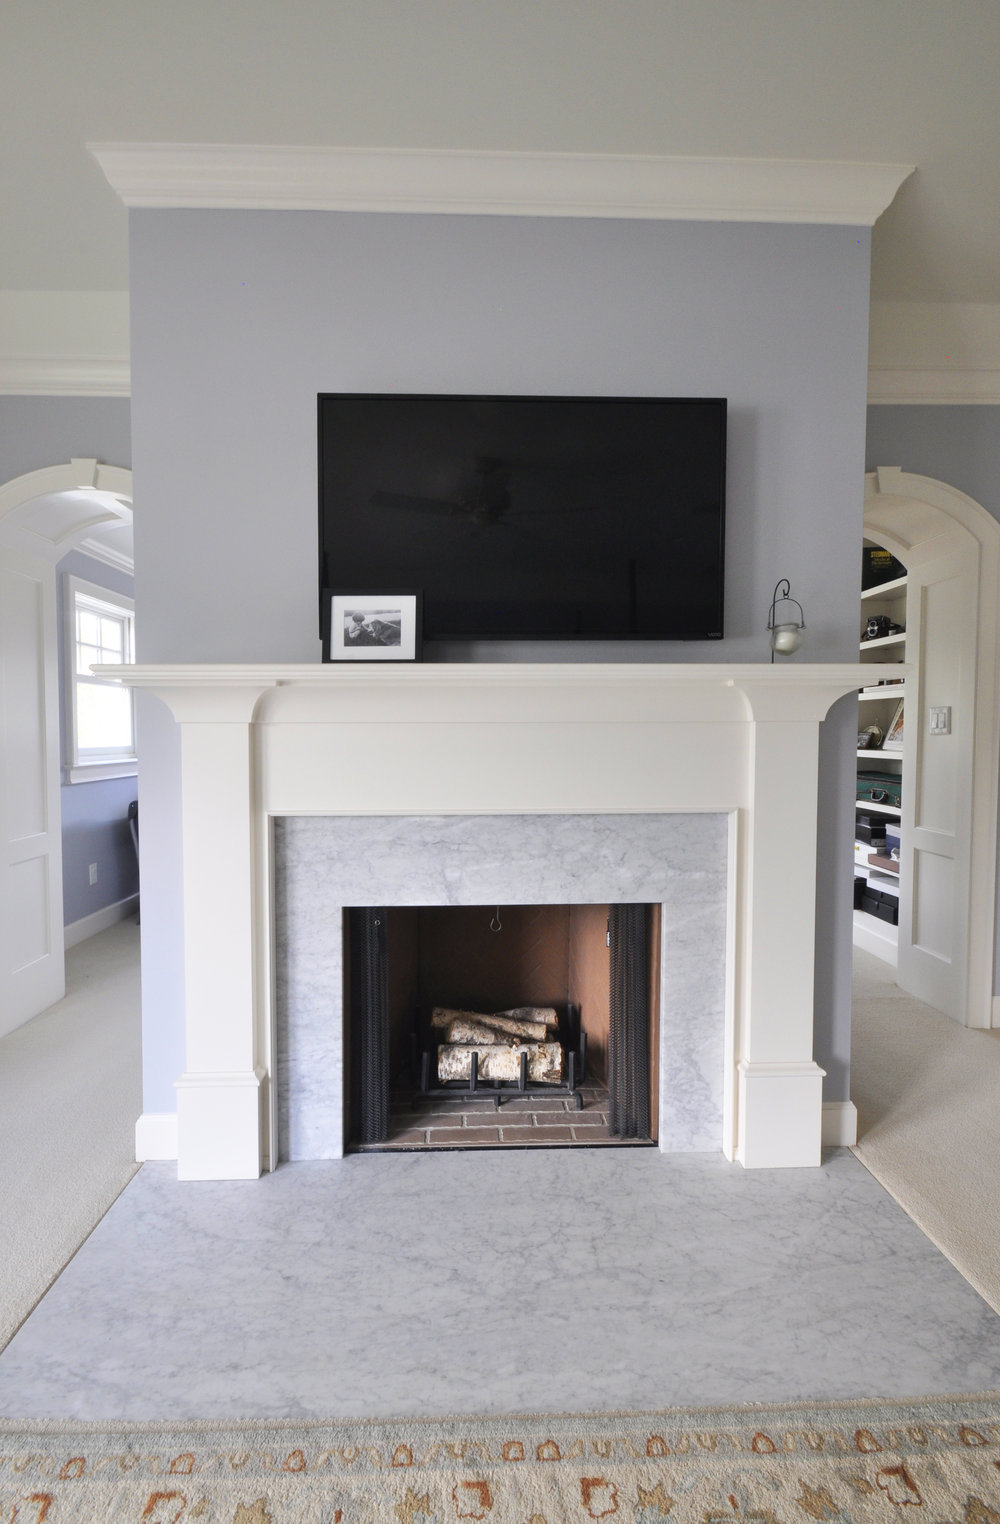 Smith_fireplace.jpg